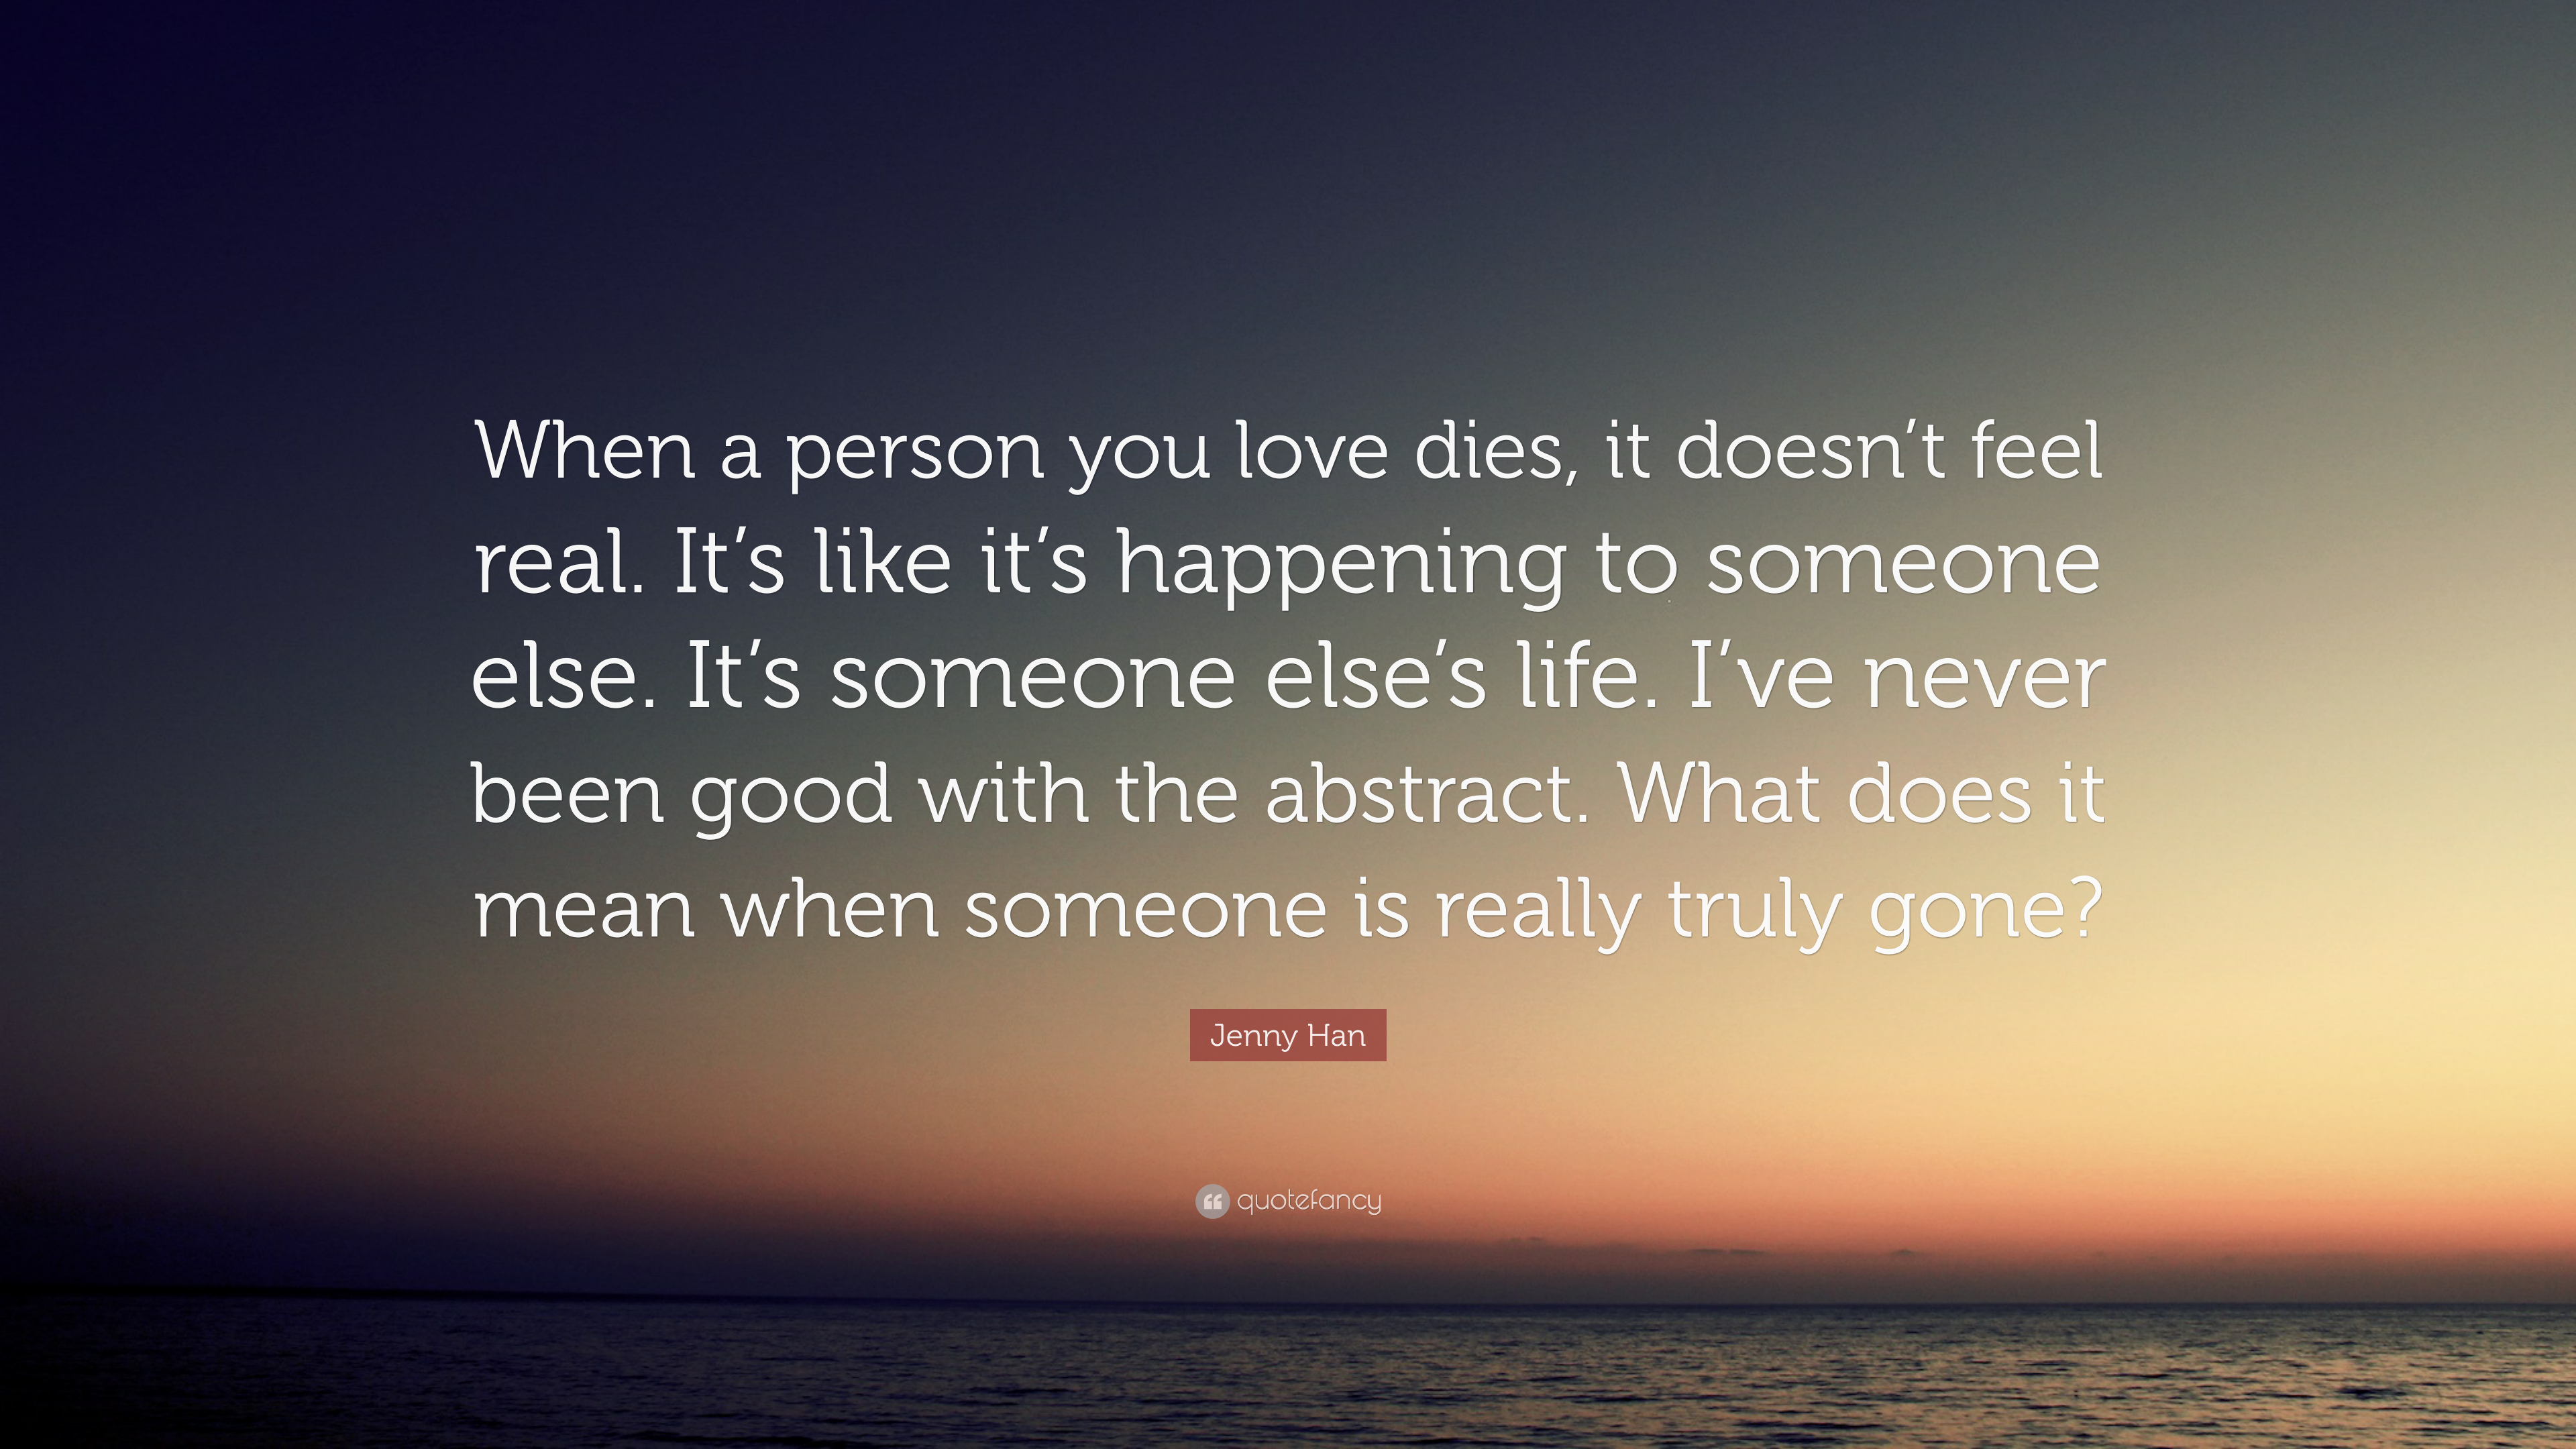 Jenny Han Quote When A Person You Love Dies It Doesnt Feel Real